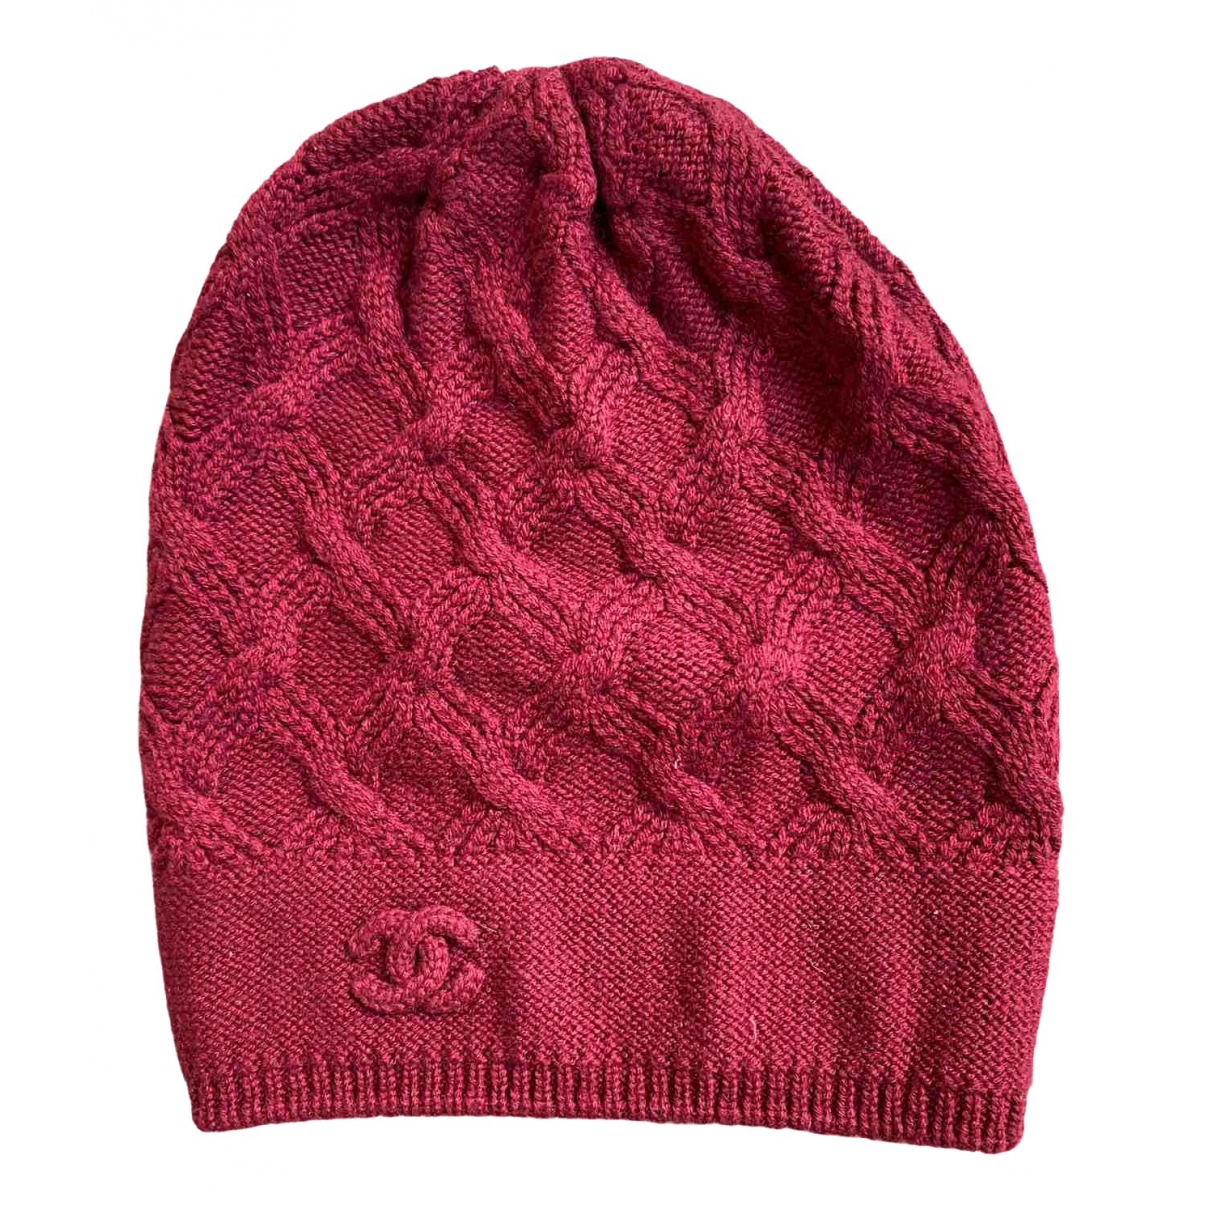 Chanel \N Red Cashmere hat for Women S International